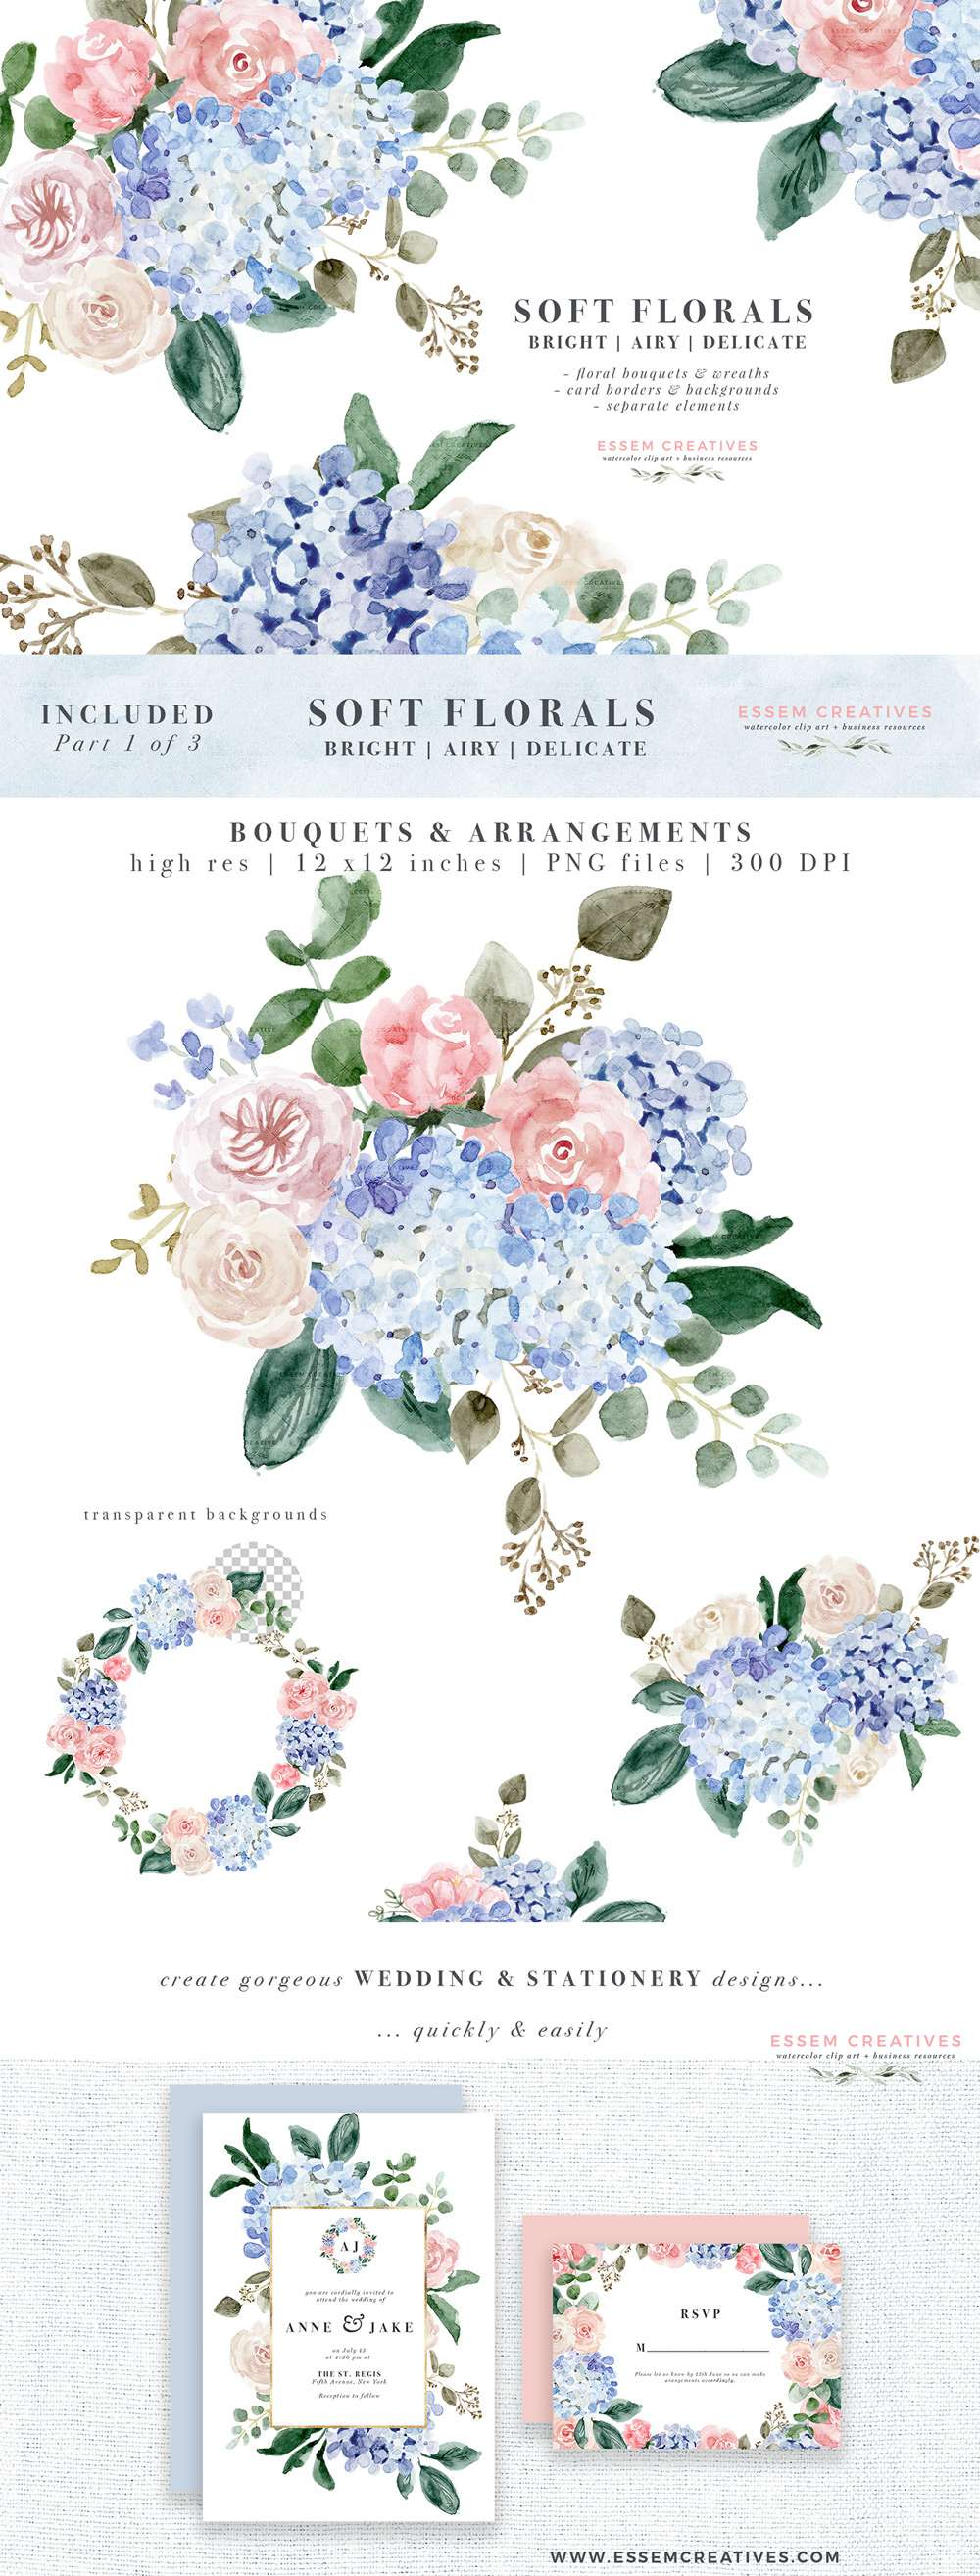 Watercolor flower illustration graphics digital download. Blue watercolor hydrangeas, pink white roses, peonies, leaves, branches in soft airy romantic dreamy spring summer colors for modern floral watercolor wedding invitations & save the date, boy birthday party baby shower, bridesmaid proposal, bridal shower decor, welcome signs, table numbers, logos blog branding. Get bouquets bunches, borders and backgrounds, floral frames, separate flowers #illustration #watercolor #weddinginvitations